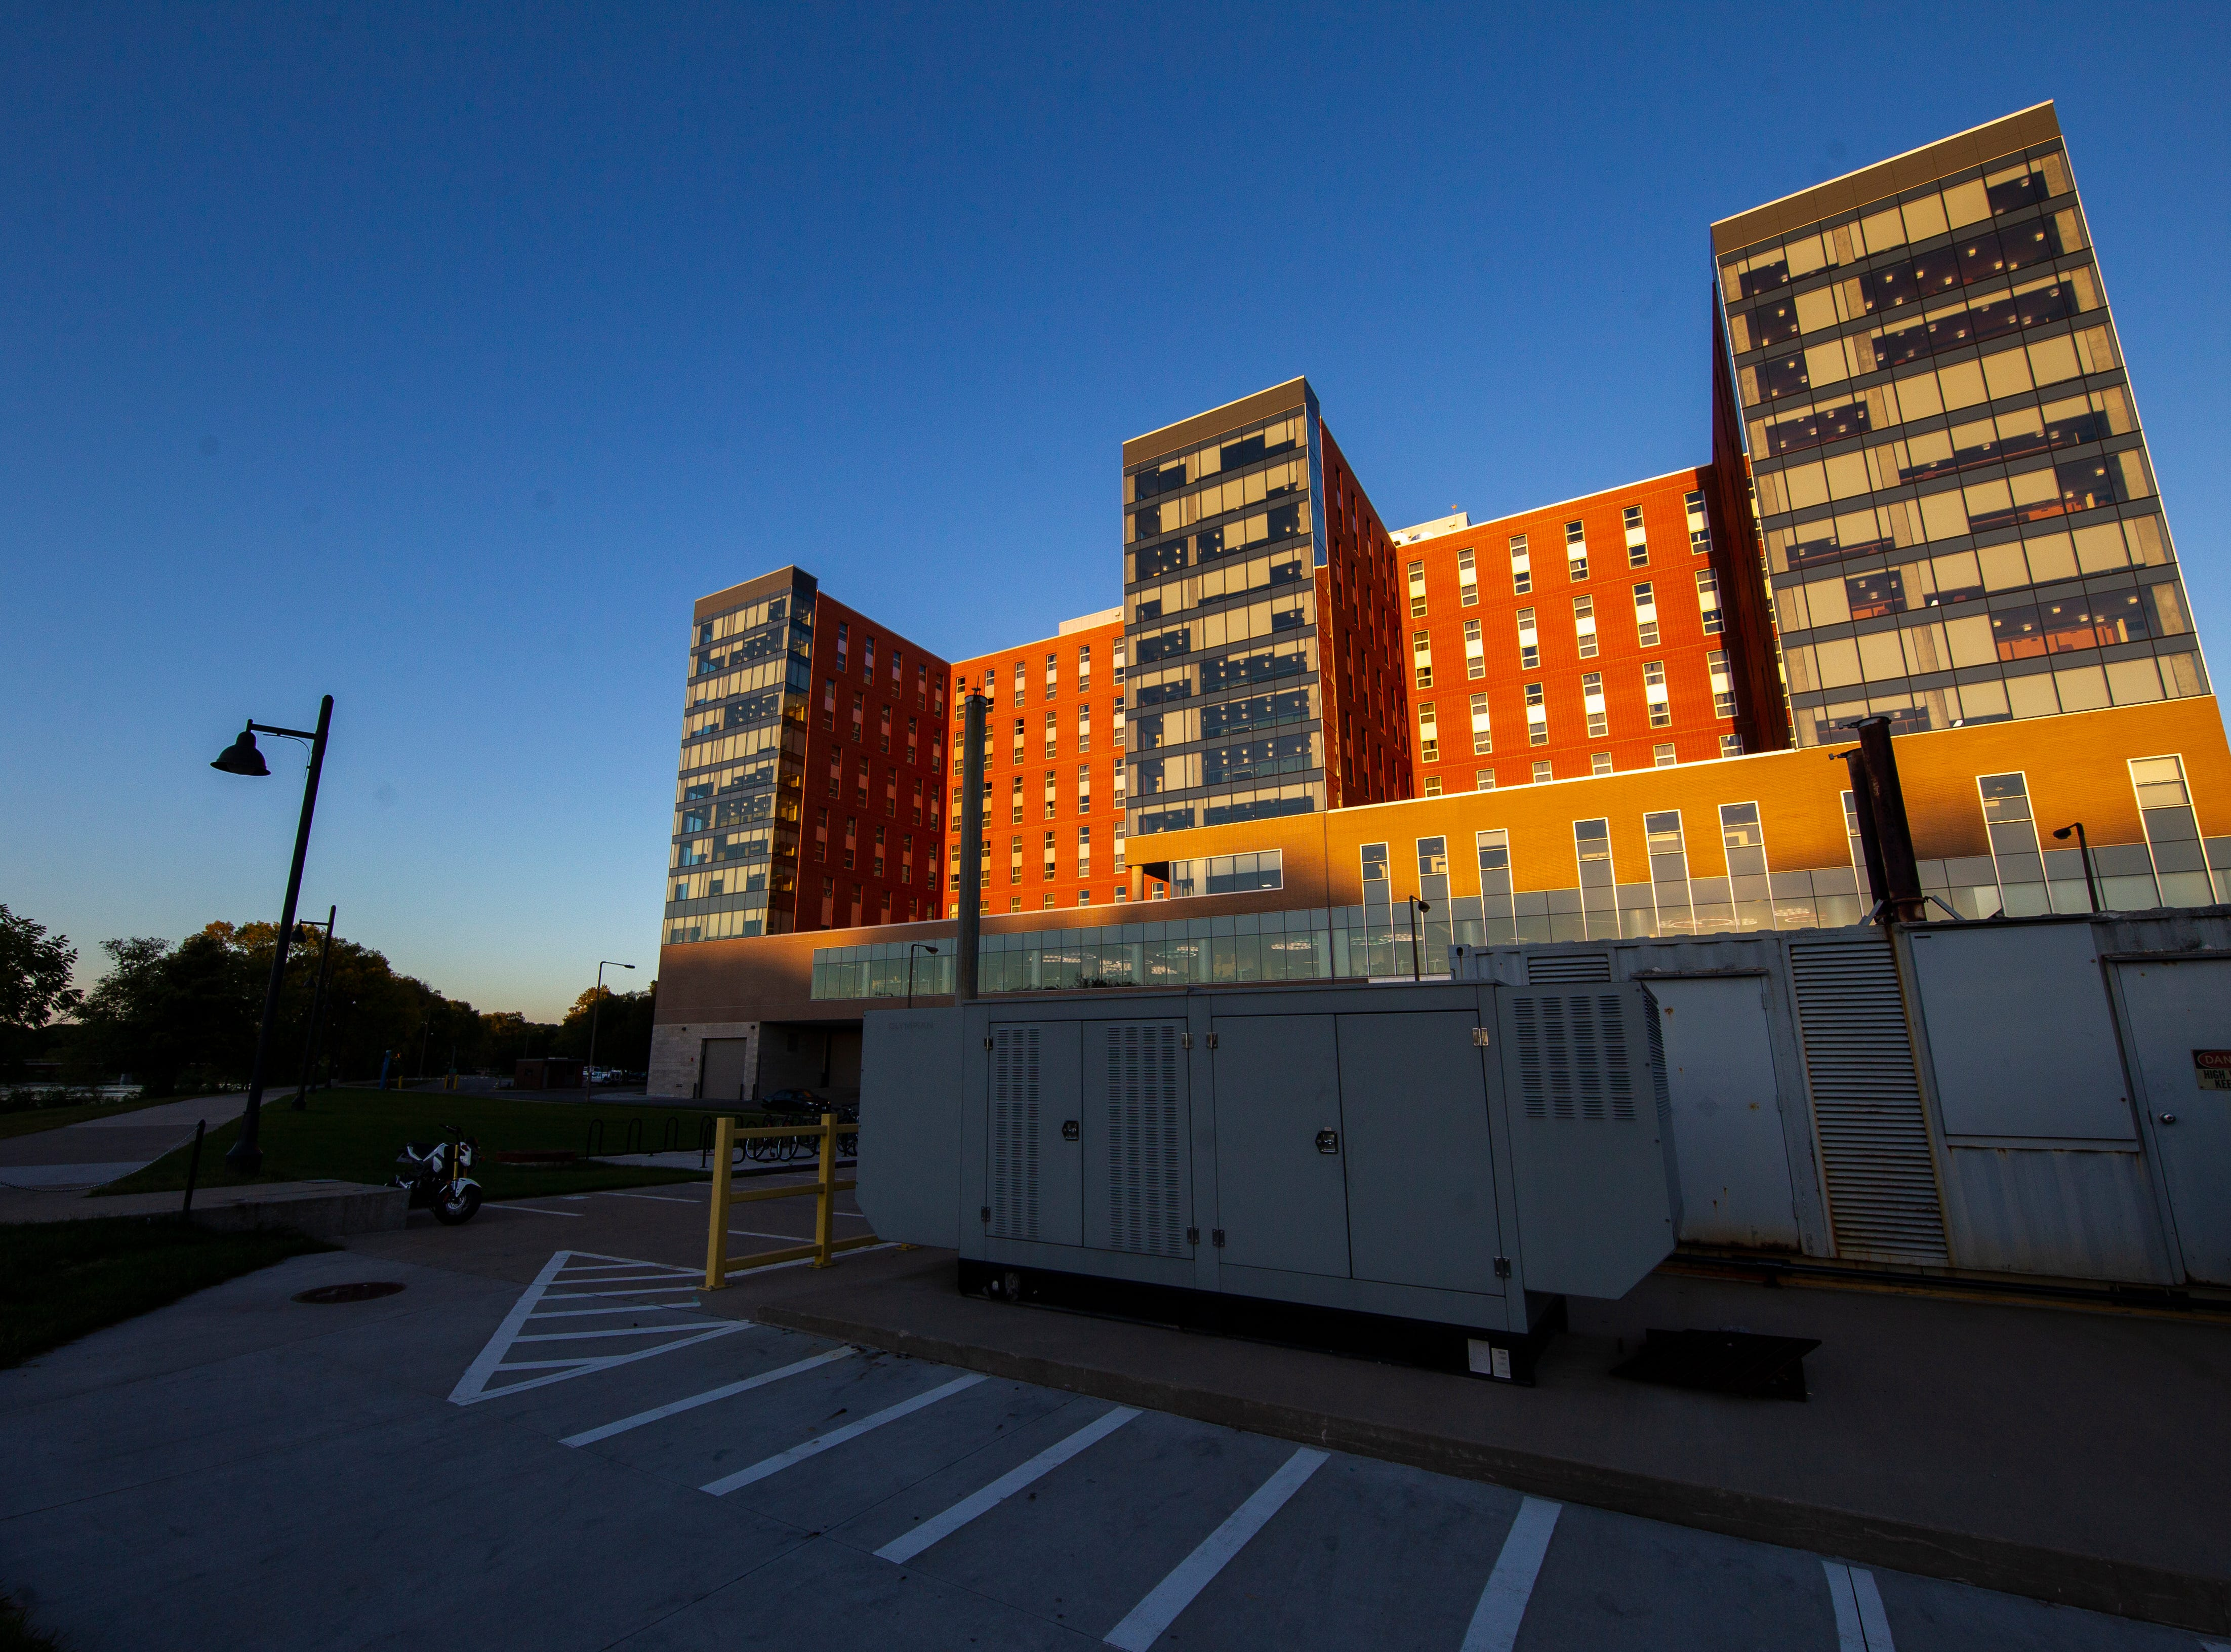 Elizabeth Catlett Residence Hall is seen on Sunday, Sept. 23, 2018, in Iowa City. Catlett was completed in 2017 and is the newest residence hall on campus, housing 1,049.